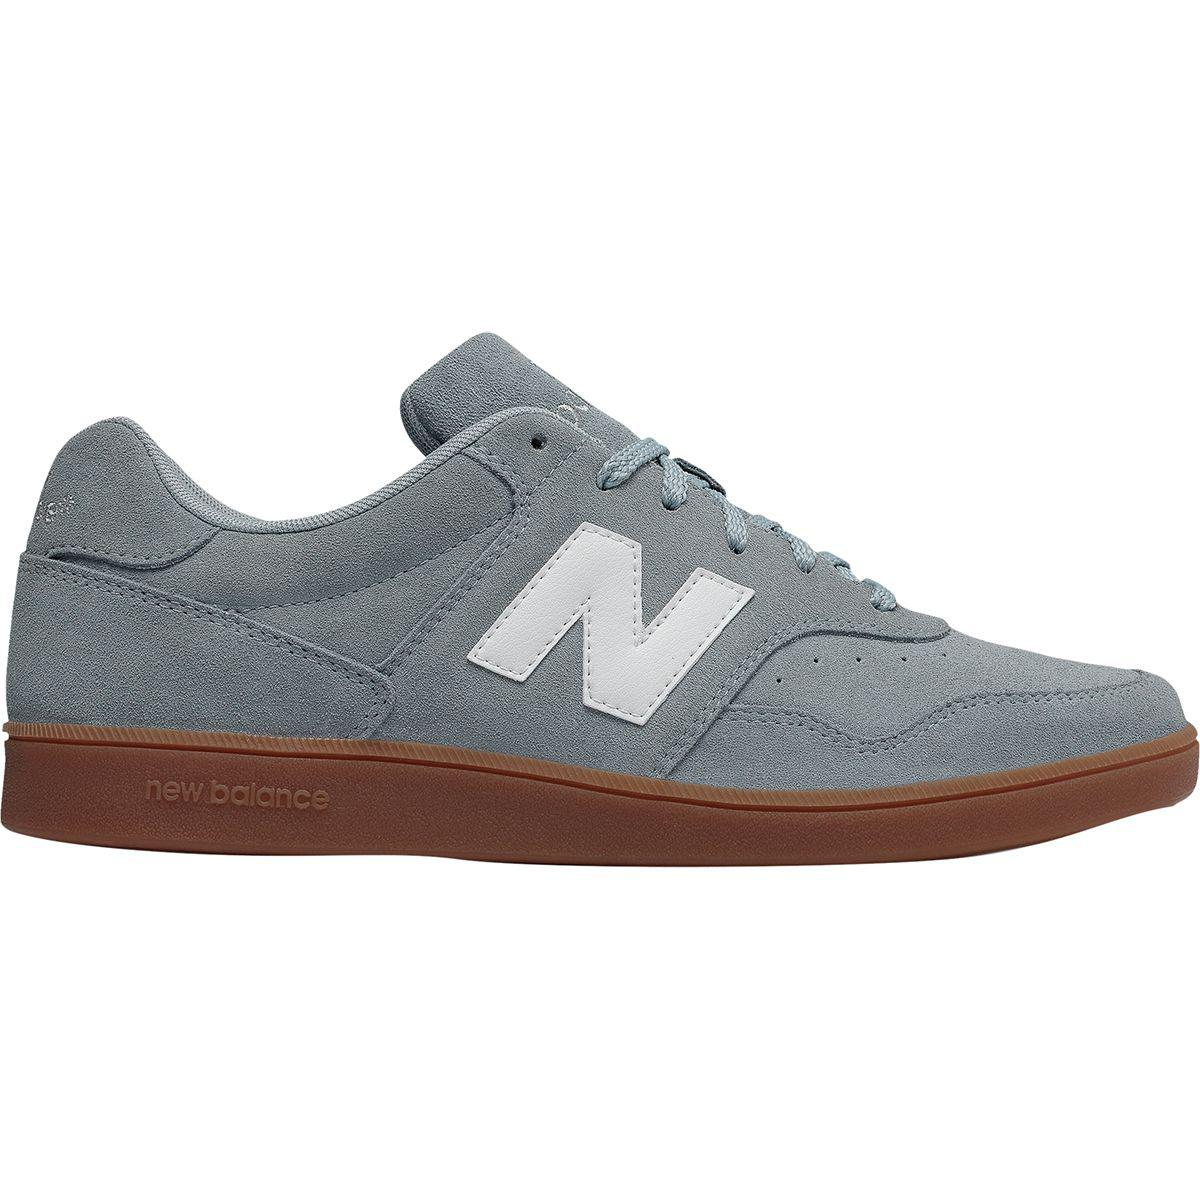 288 VINTAGE COURT - FOOTWEAR - Low-tops & sneakers New Balance is6rz9